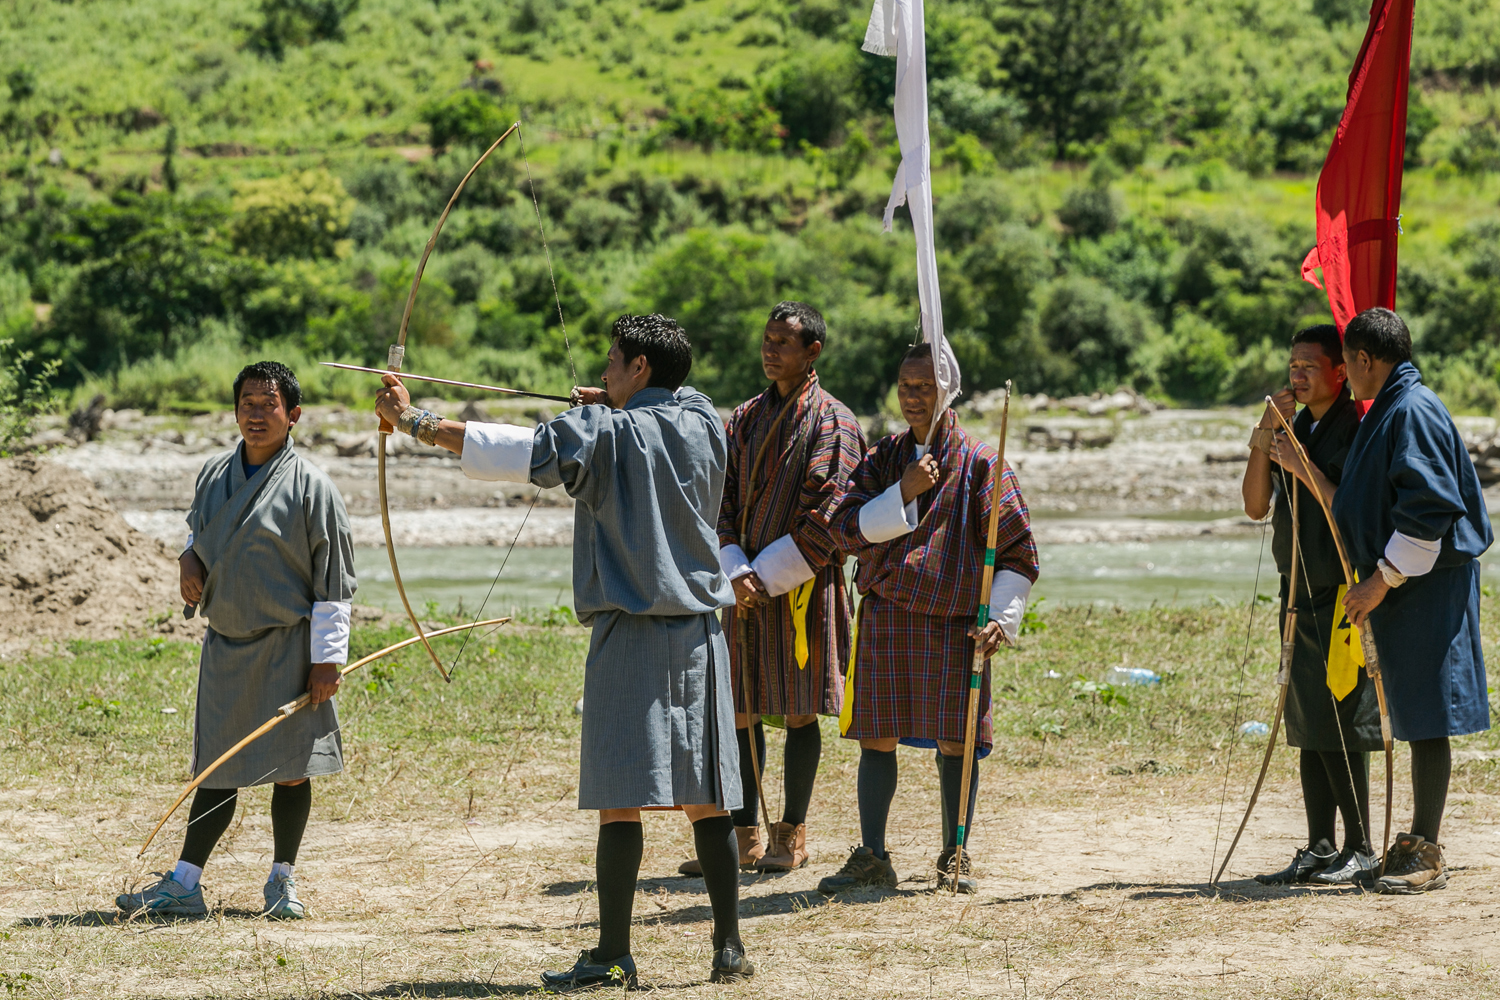 Archery is Bhutan's national sport, practiced by all ages